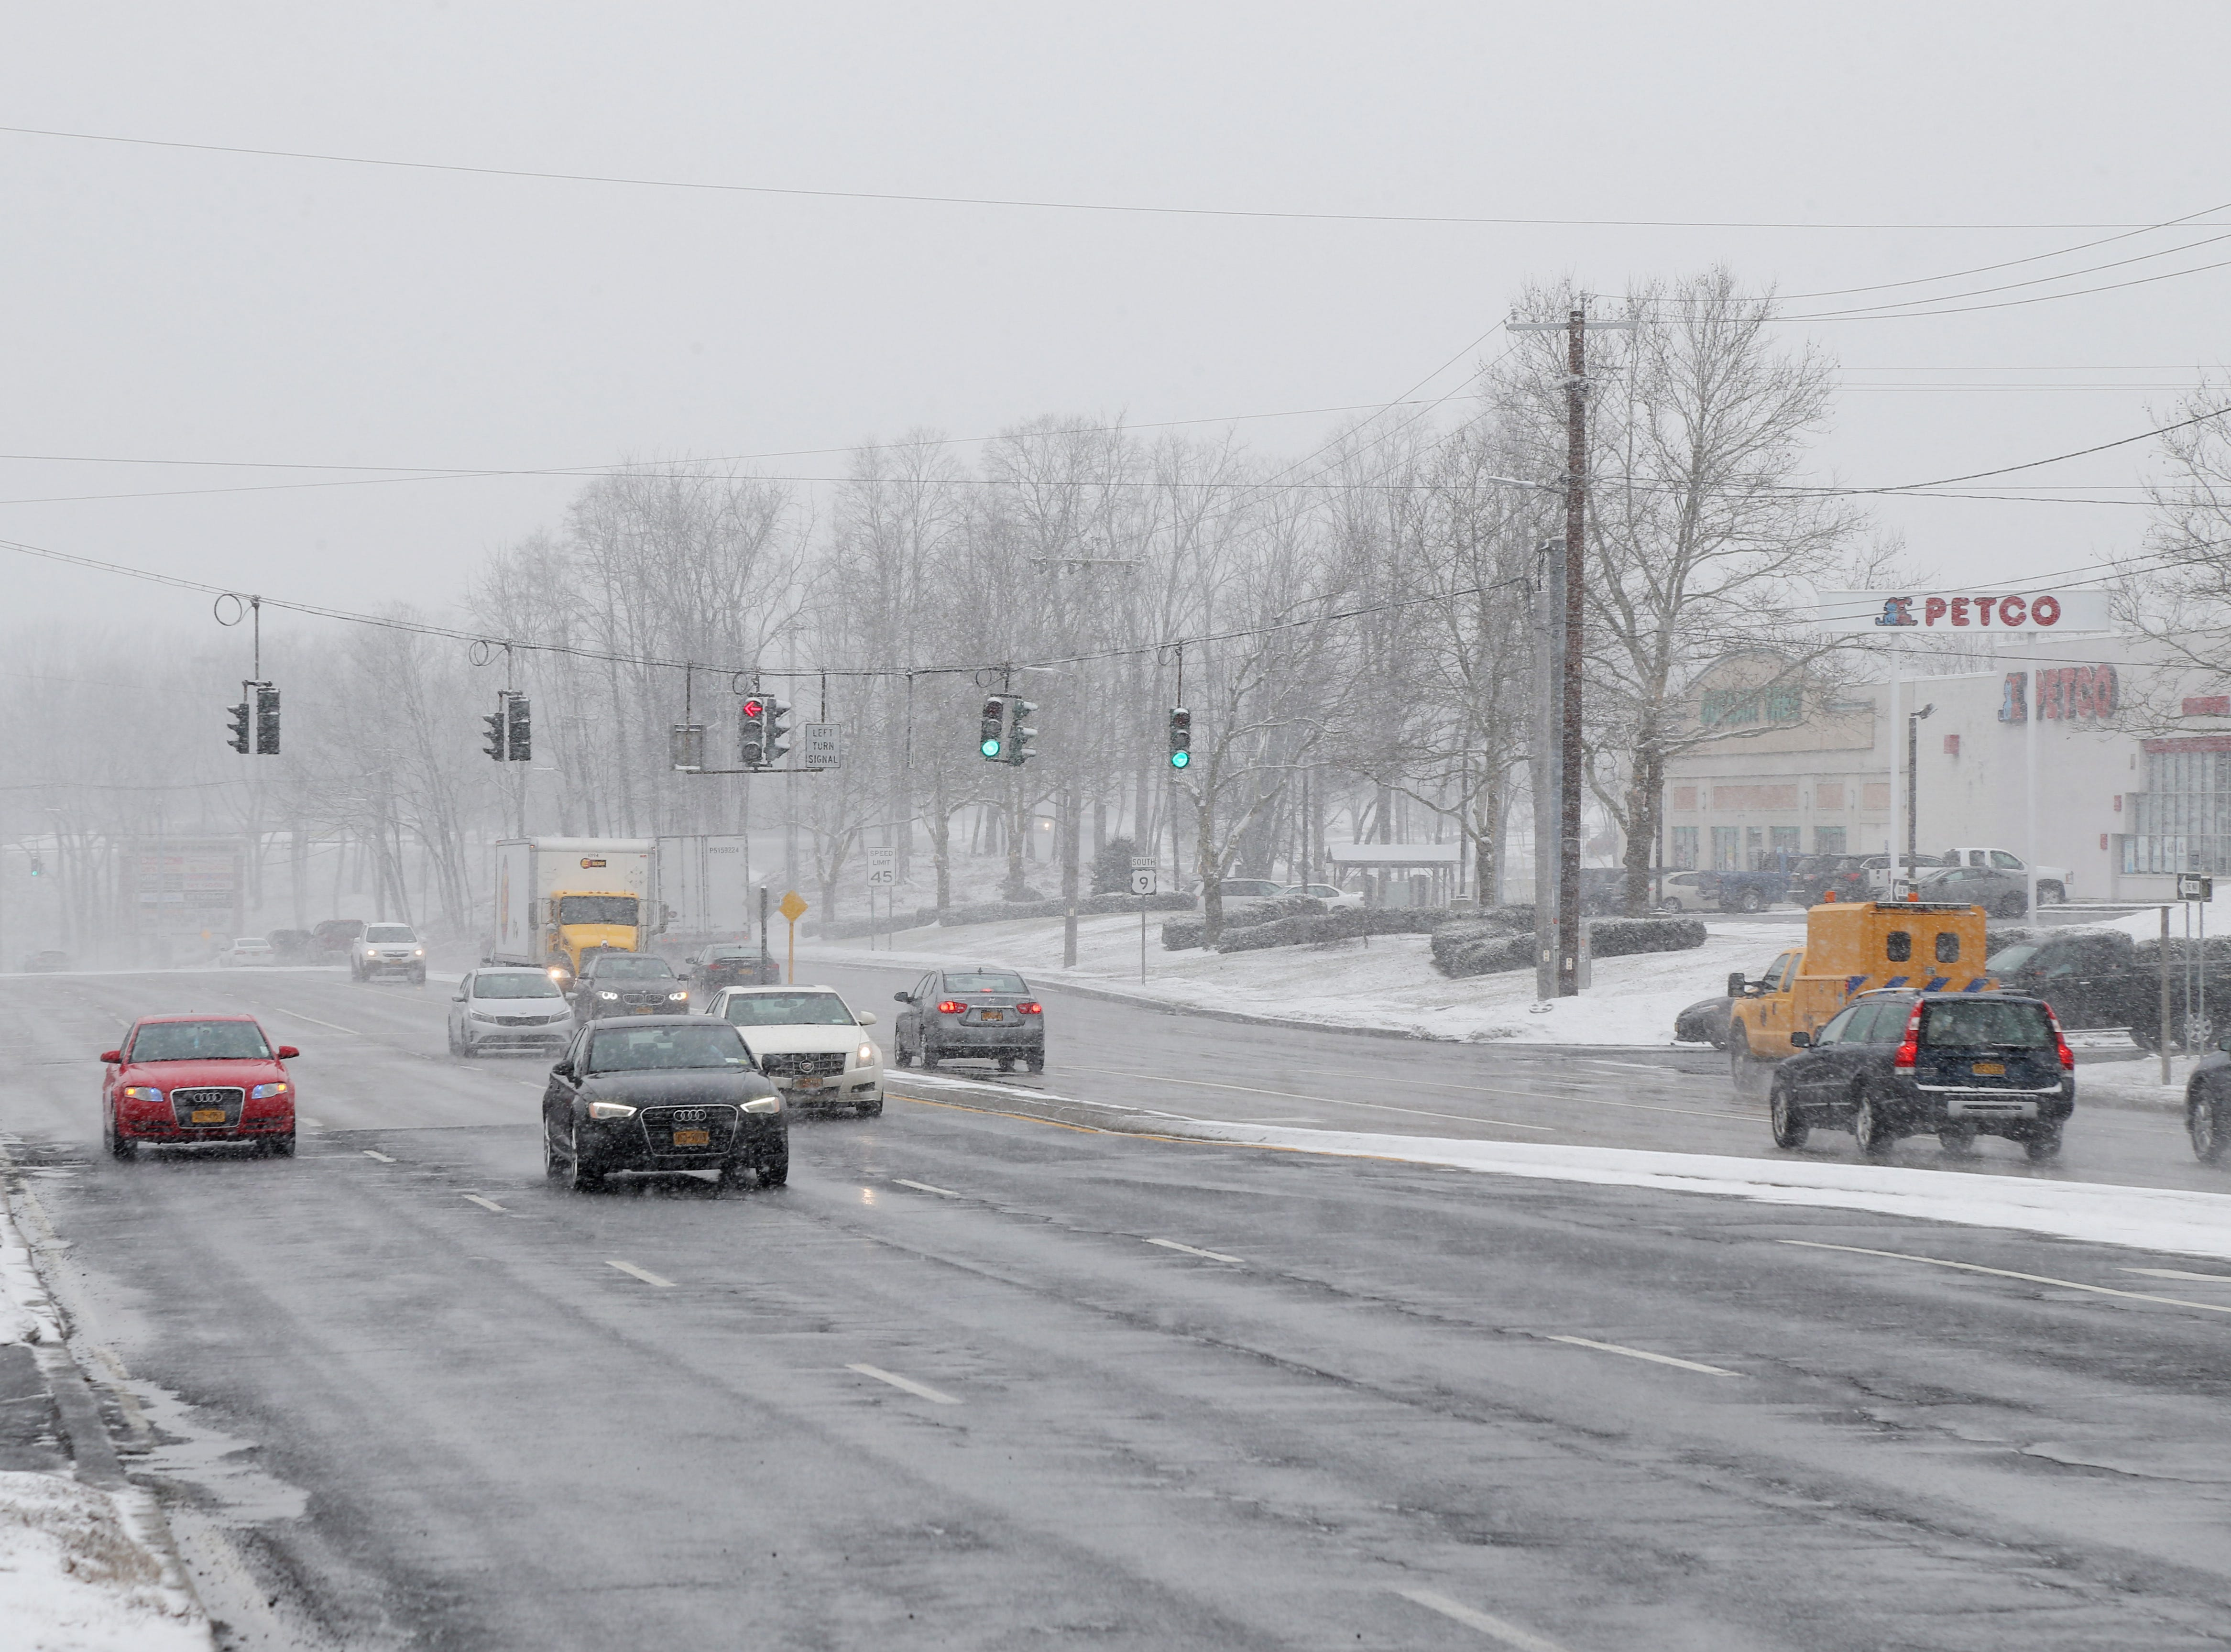 Traffic travels north along route 9 in the Town of Poughkeepsie on January 29, 2019.